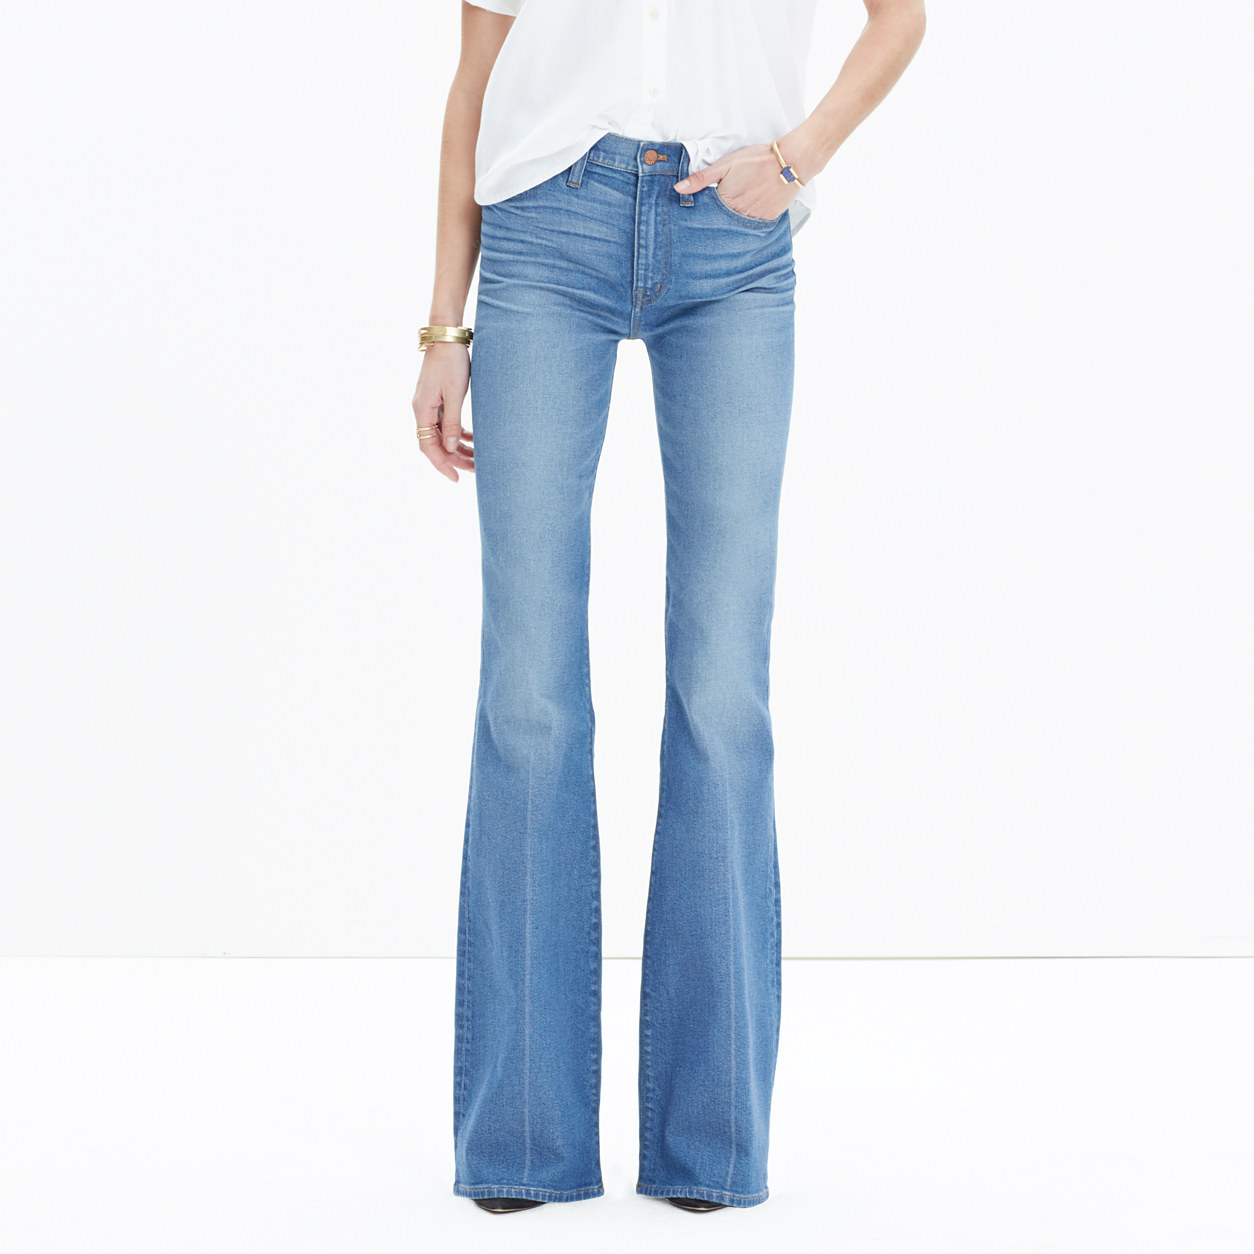 Flea Market Flare Jeans in Maribel Wash : demi-boots & wide-leg ...